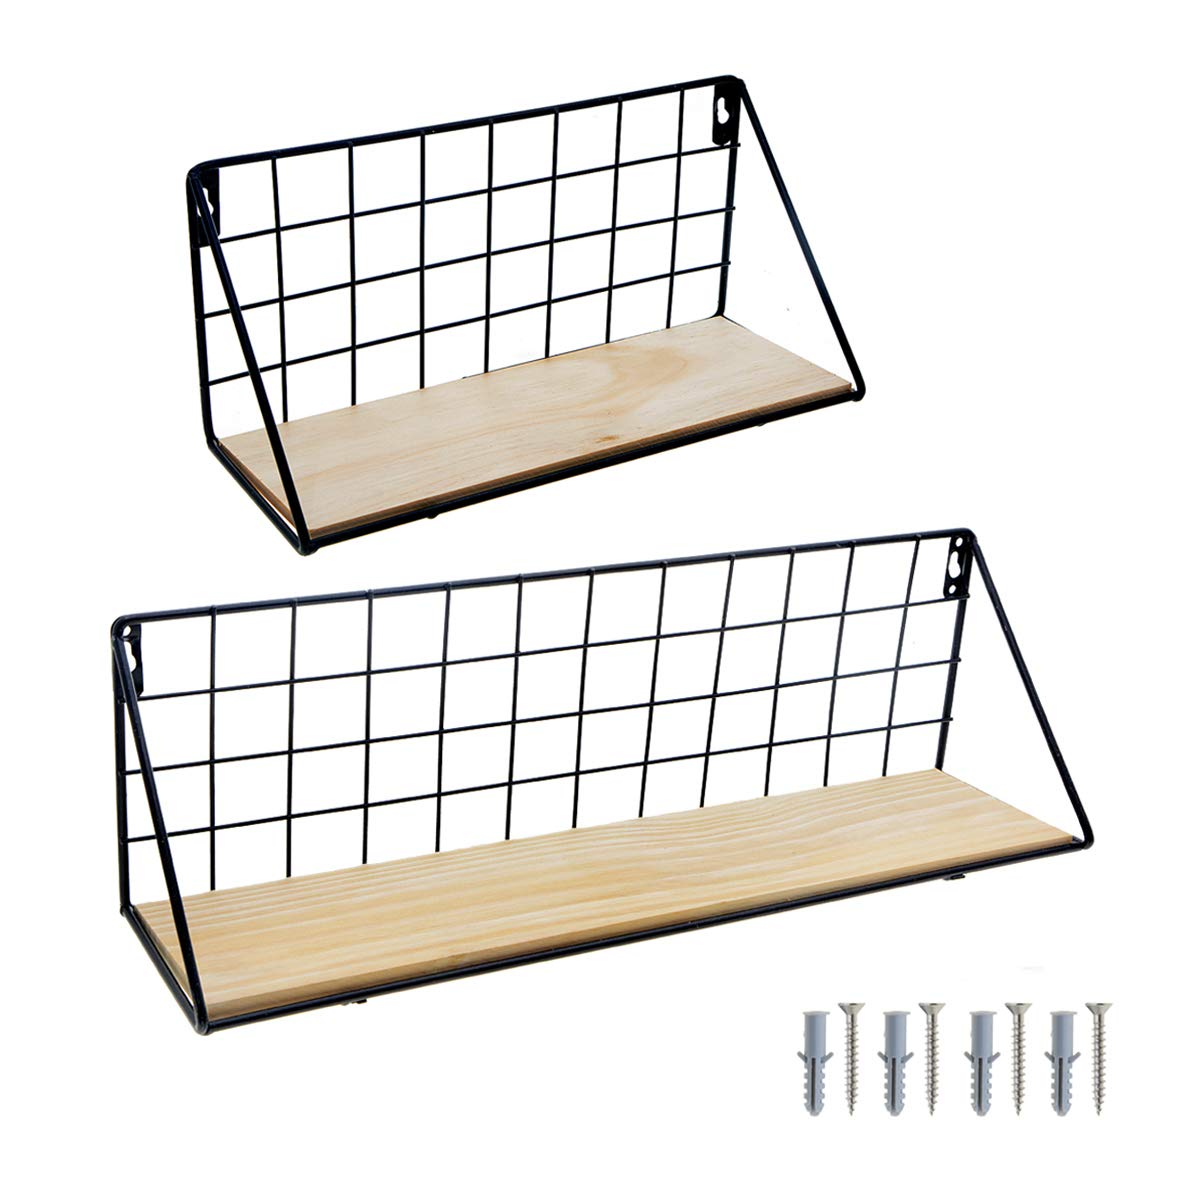 S, Black Saim Floating Shelves Wall Mounted Metal Wire /& Wooden Wall Hanging Shelf Grid Display Rack for Books Picture Frames Collection Decorations Potted Soap Conditioner Shampoo